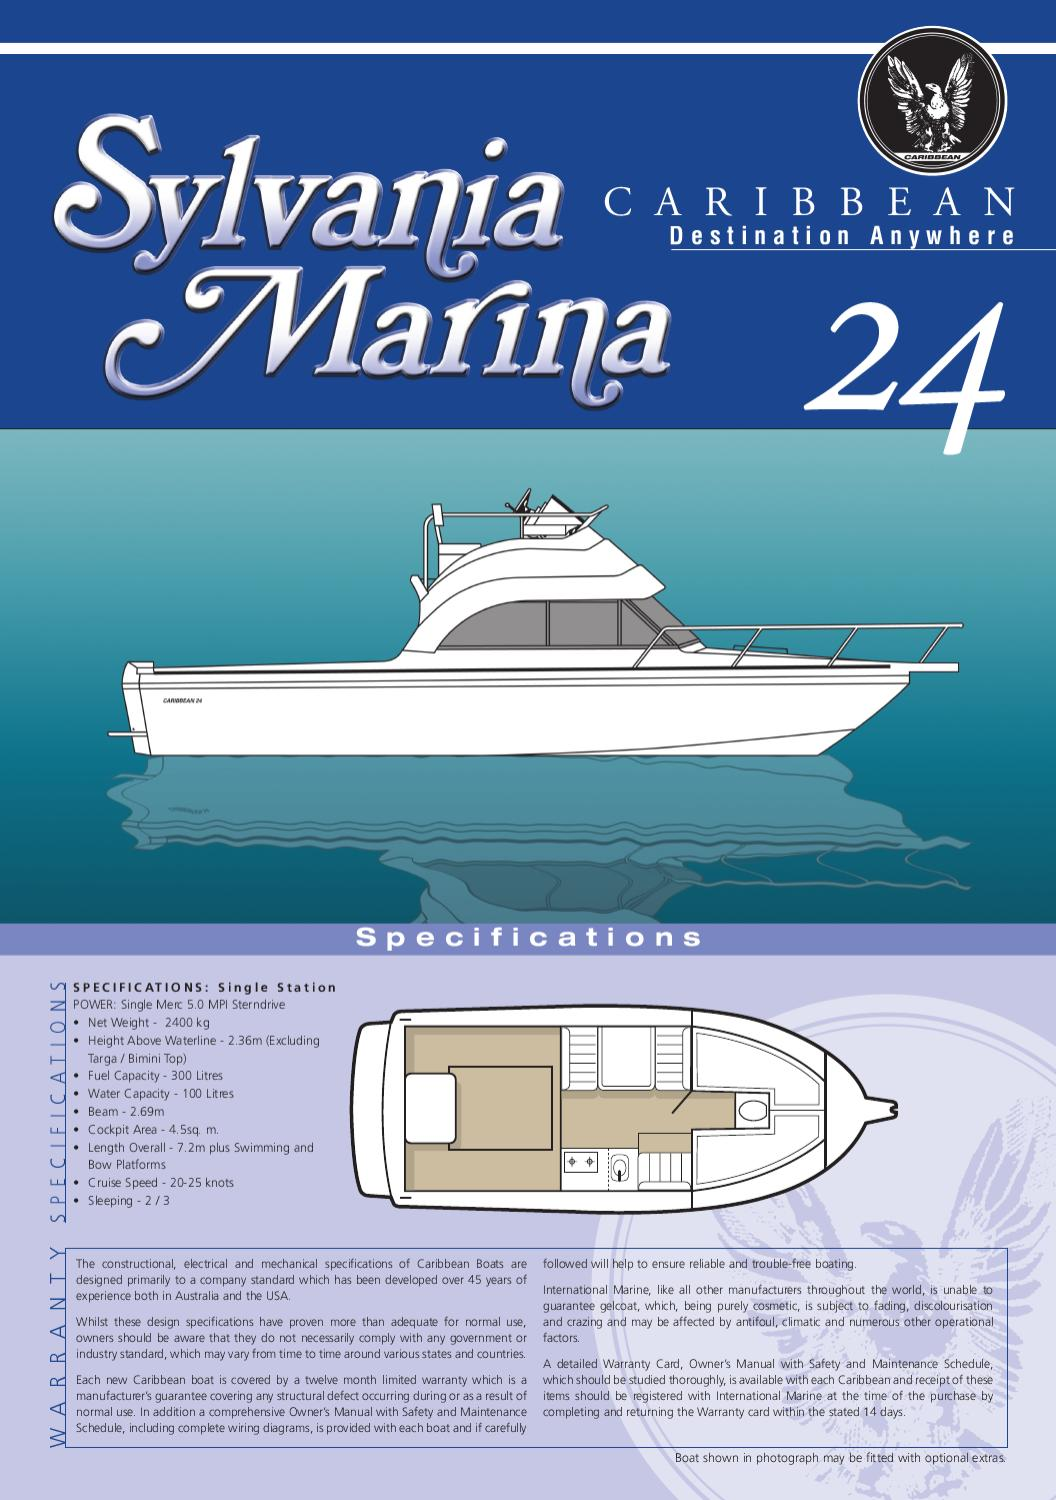 caribbean range by myboatingshop com issuuBoat Station Wiring Diagram For Two #13